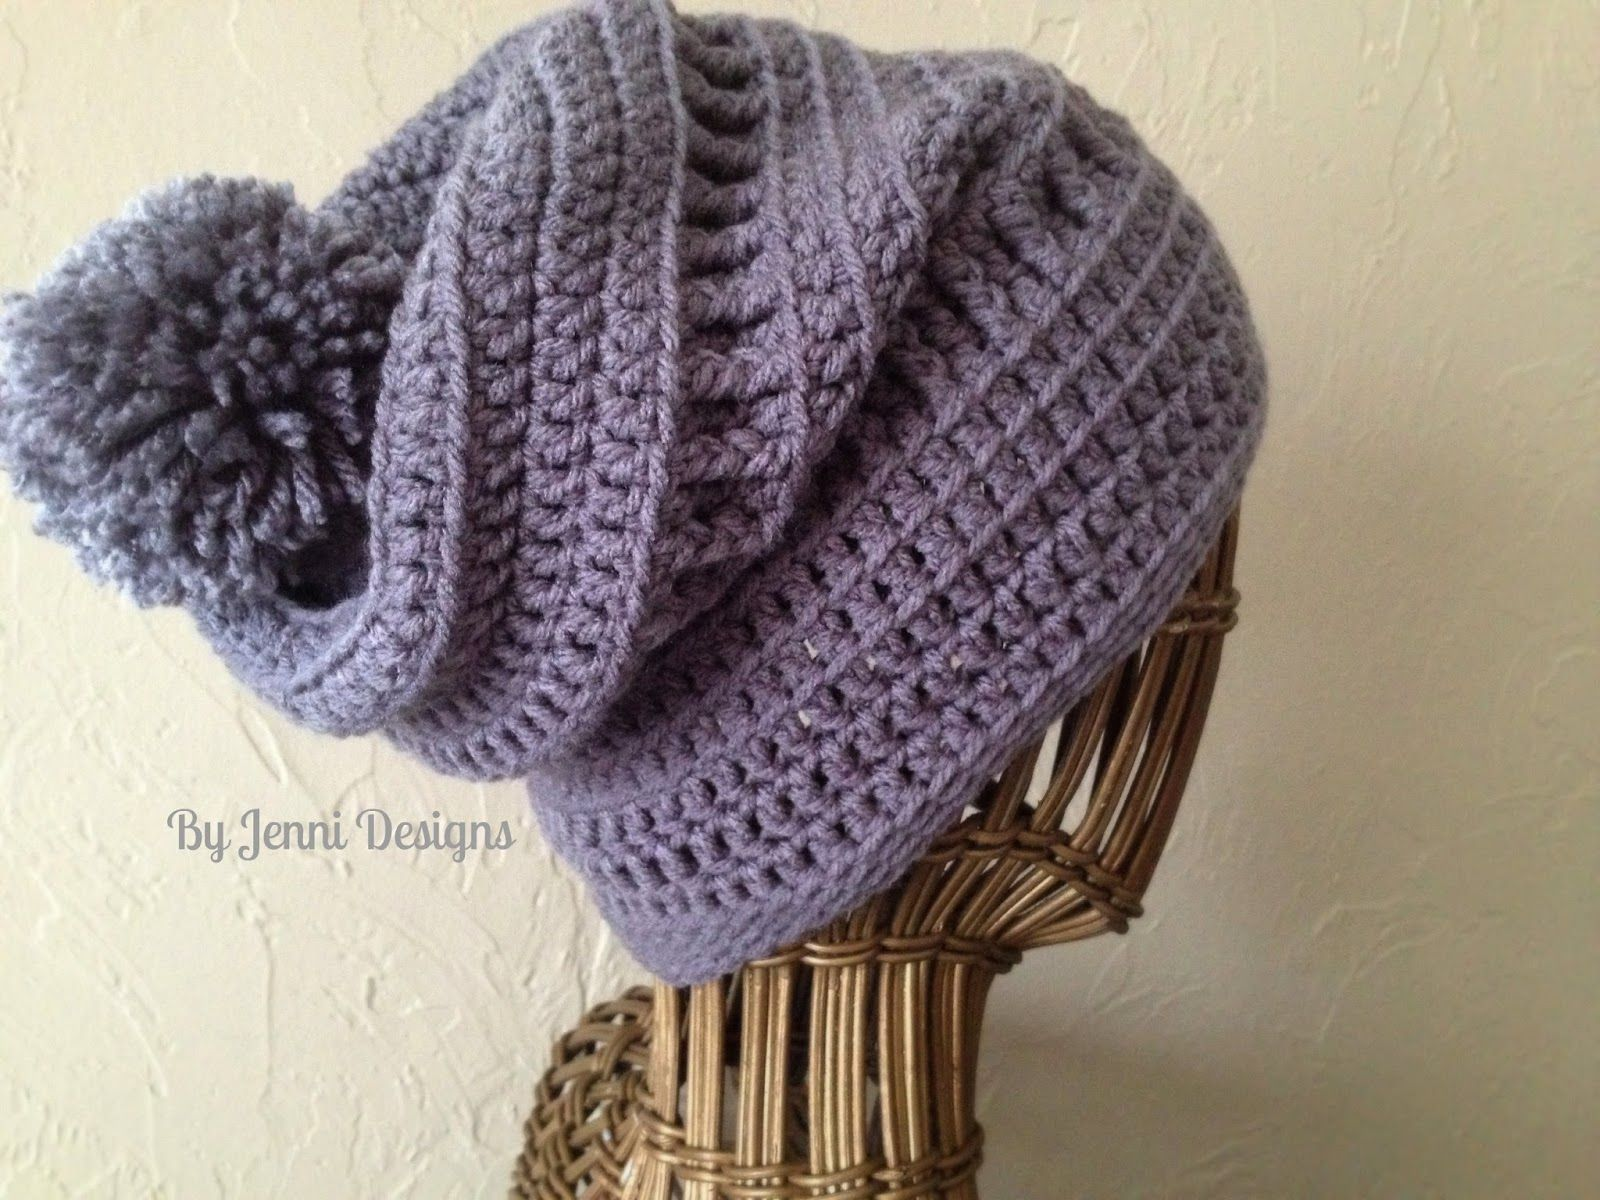 e17243956711c By Jenni Designs  Slouchy Textured Beanie. Slouchy Textured Beanie pattern  by Jenni Catavu Crochet ...